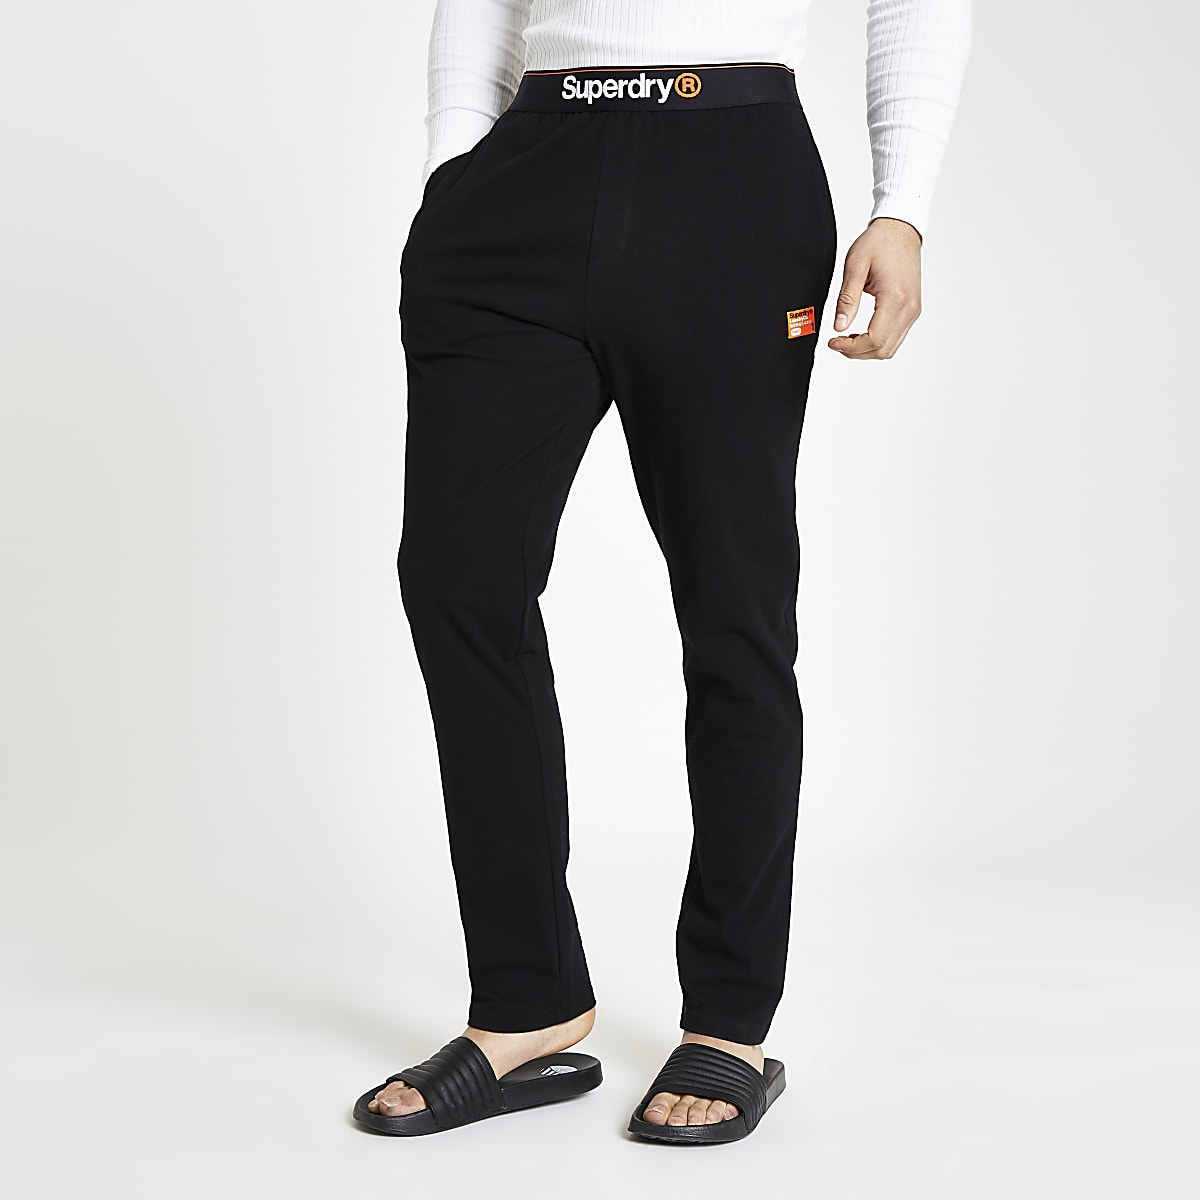 Superdry black loungewear trousers